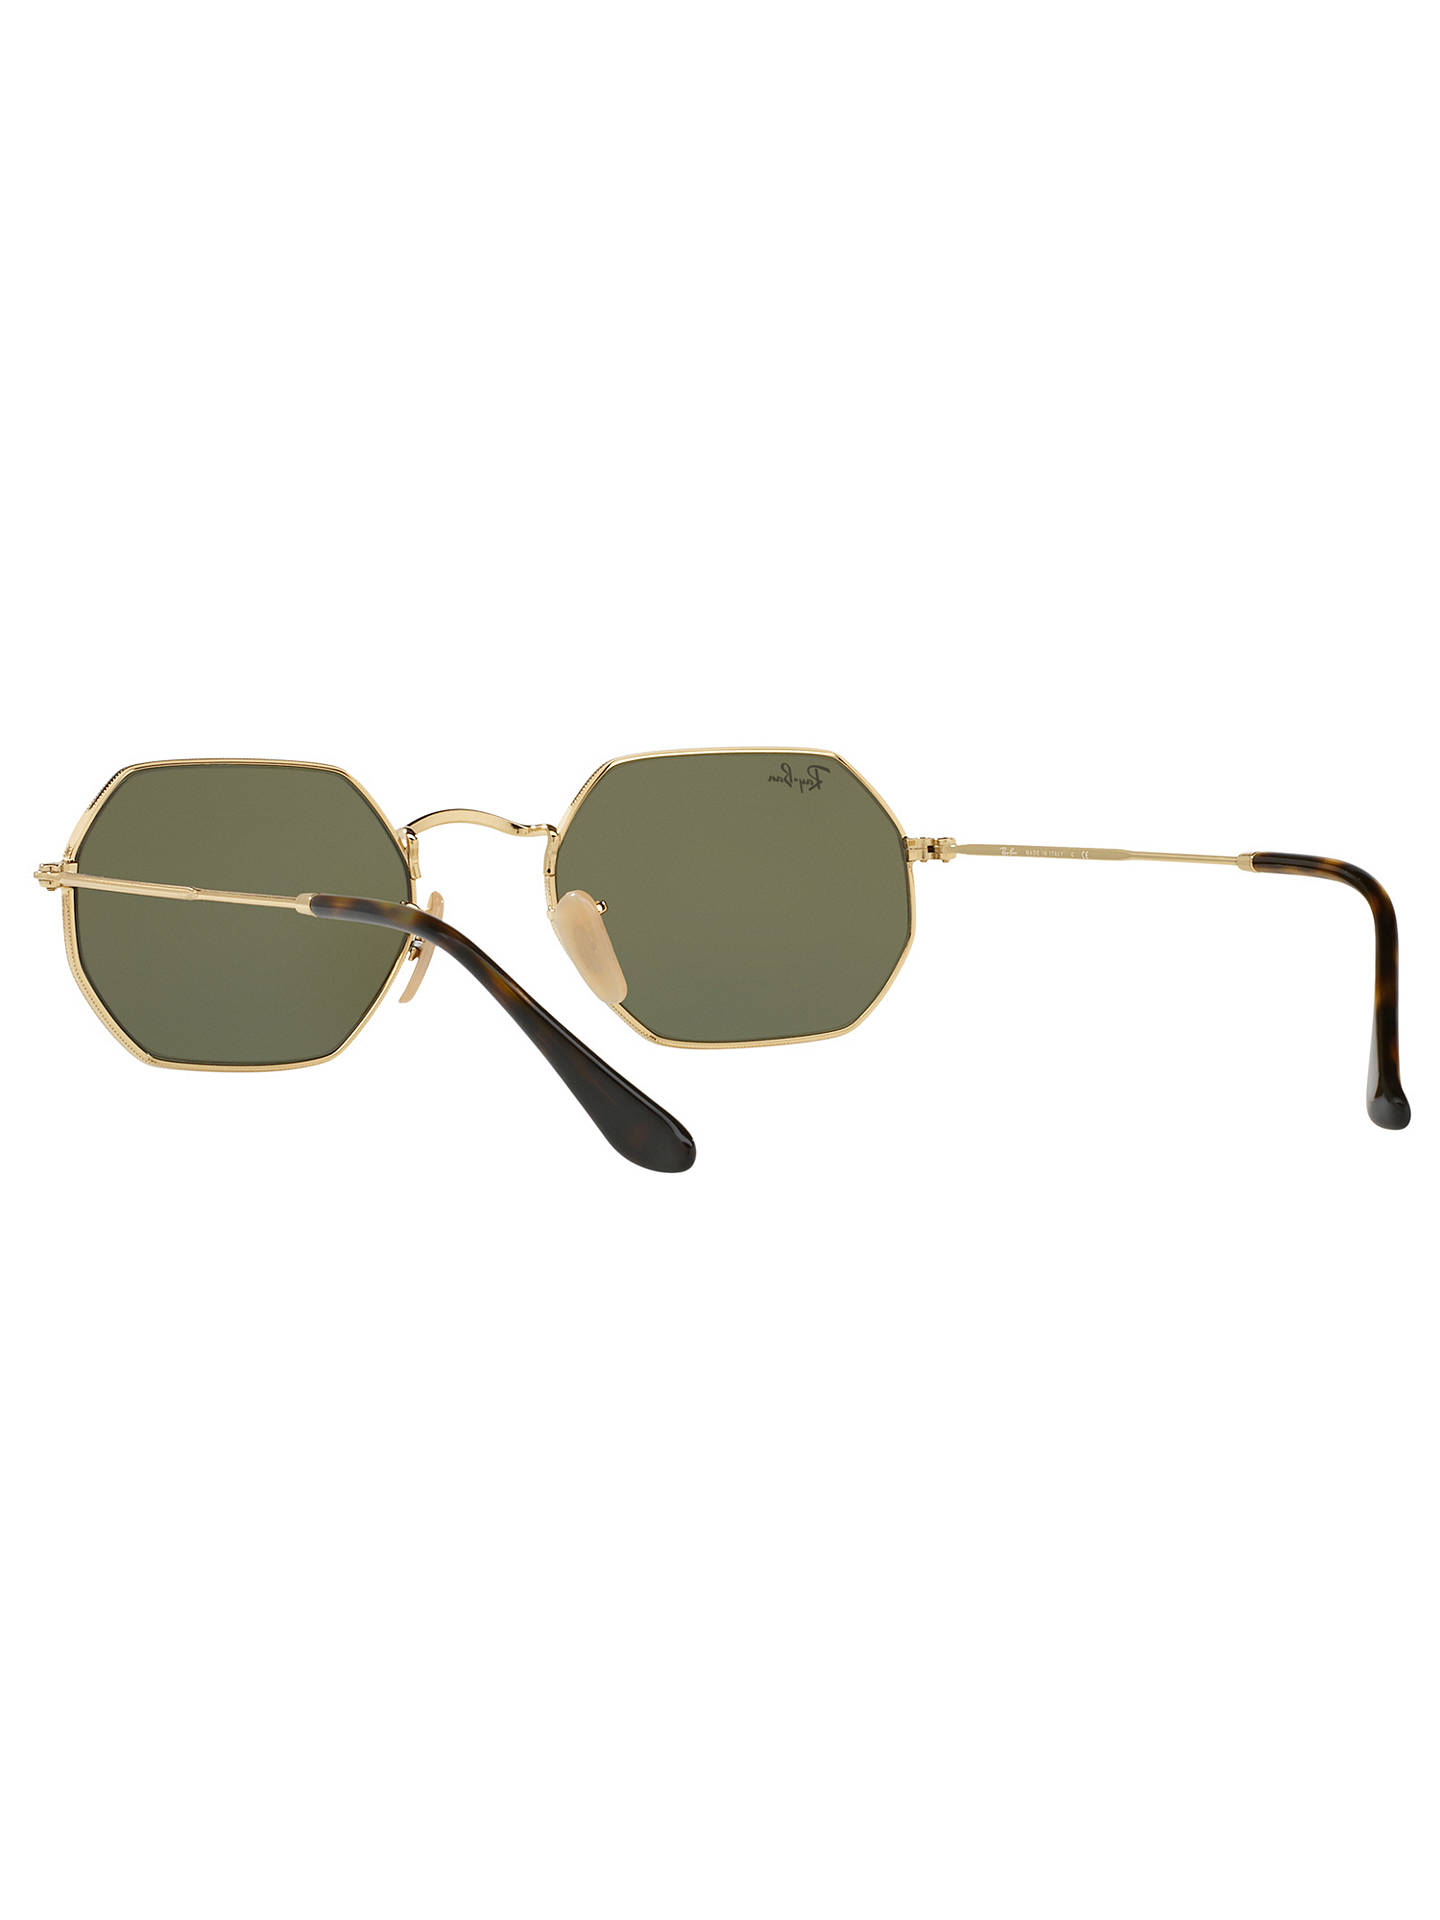 BuyRay-Ban RB3556N Heptagonal Sunglasses, Gold/Mirror Grey Online at johnlewis.com